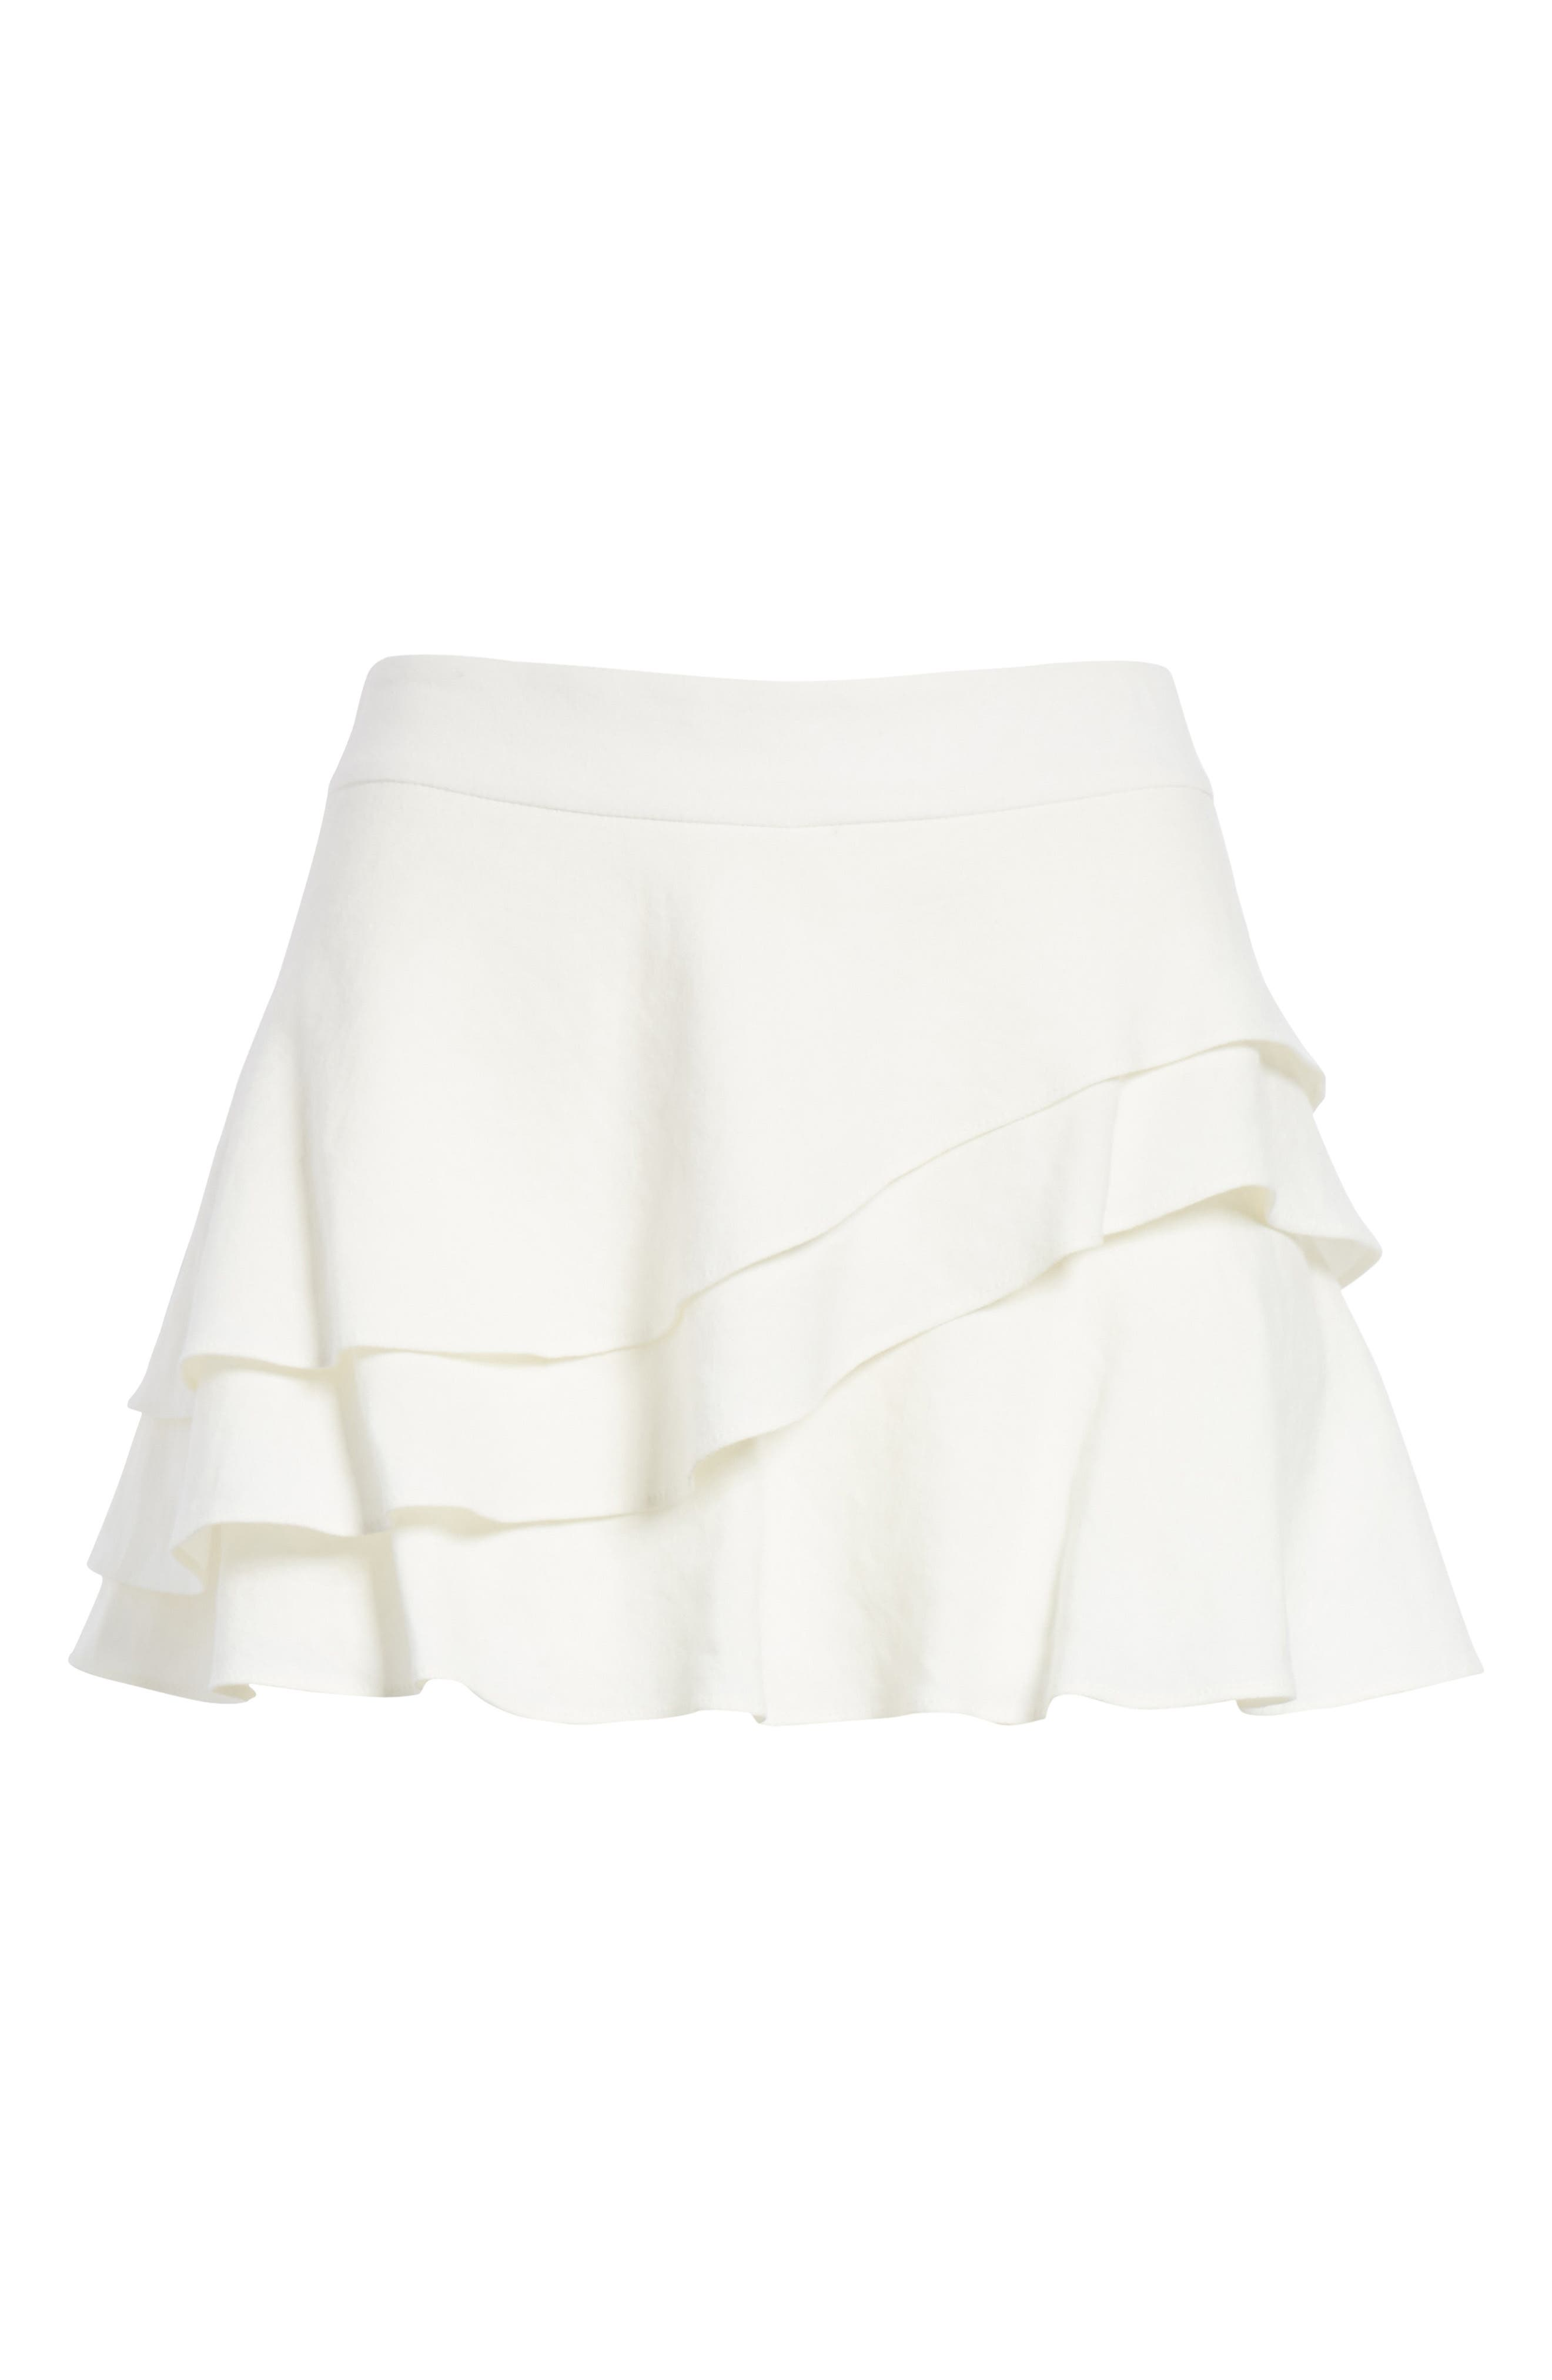 ALICE + OLIVIA,                             Mariella Tiered Ruffle Skort,                             Alternate thumbnail 6, color,                             127